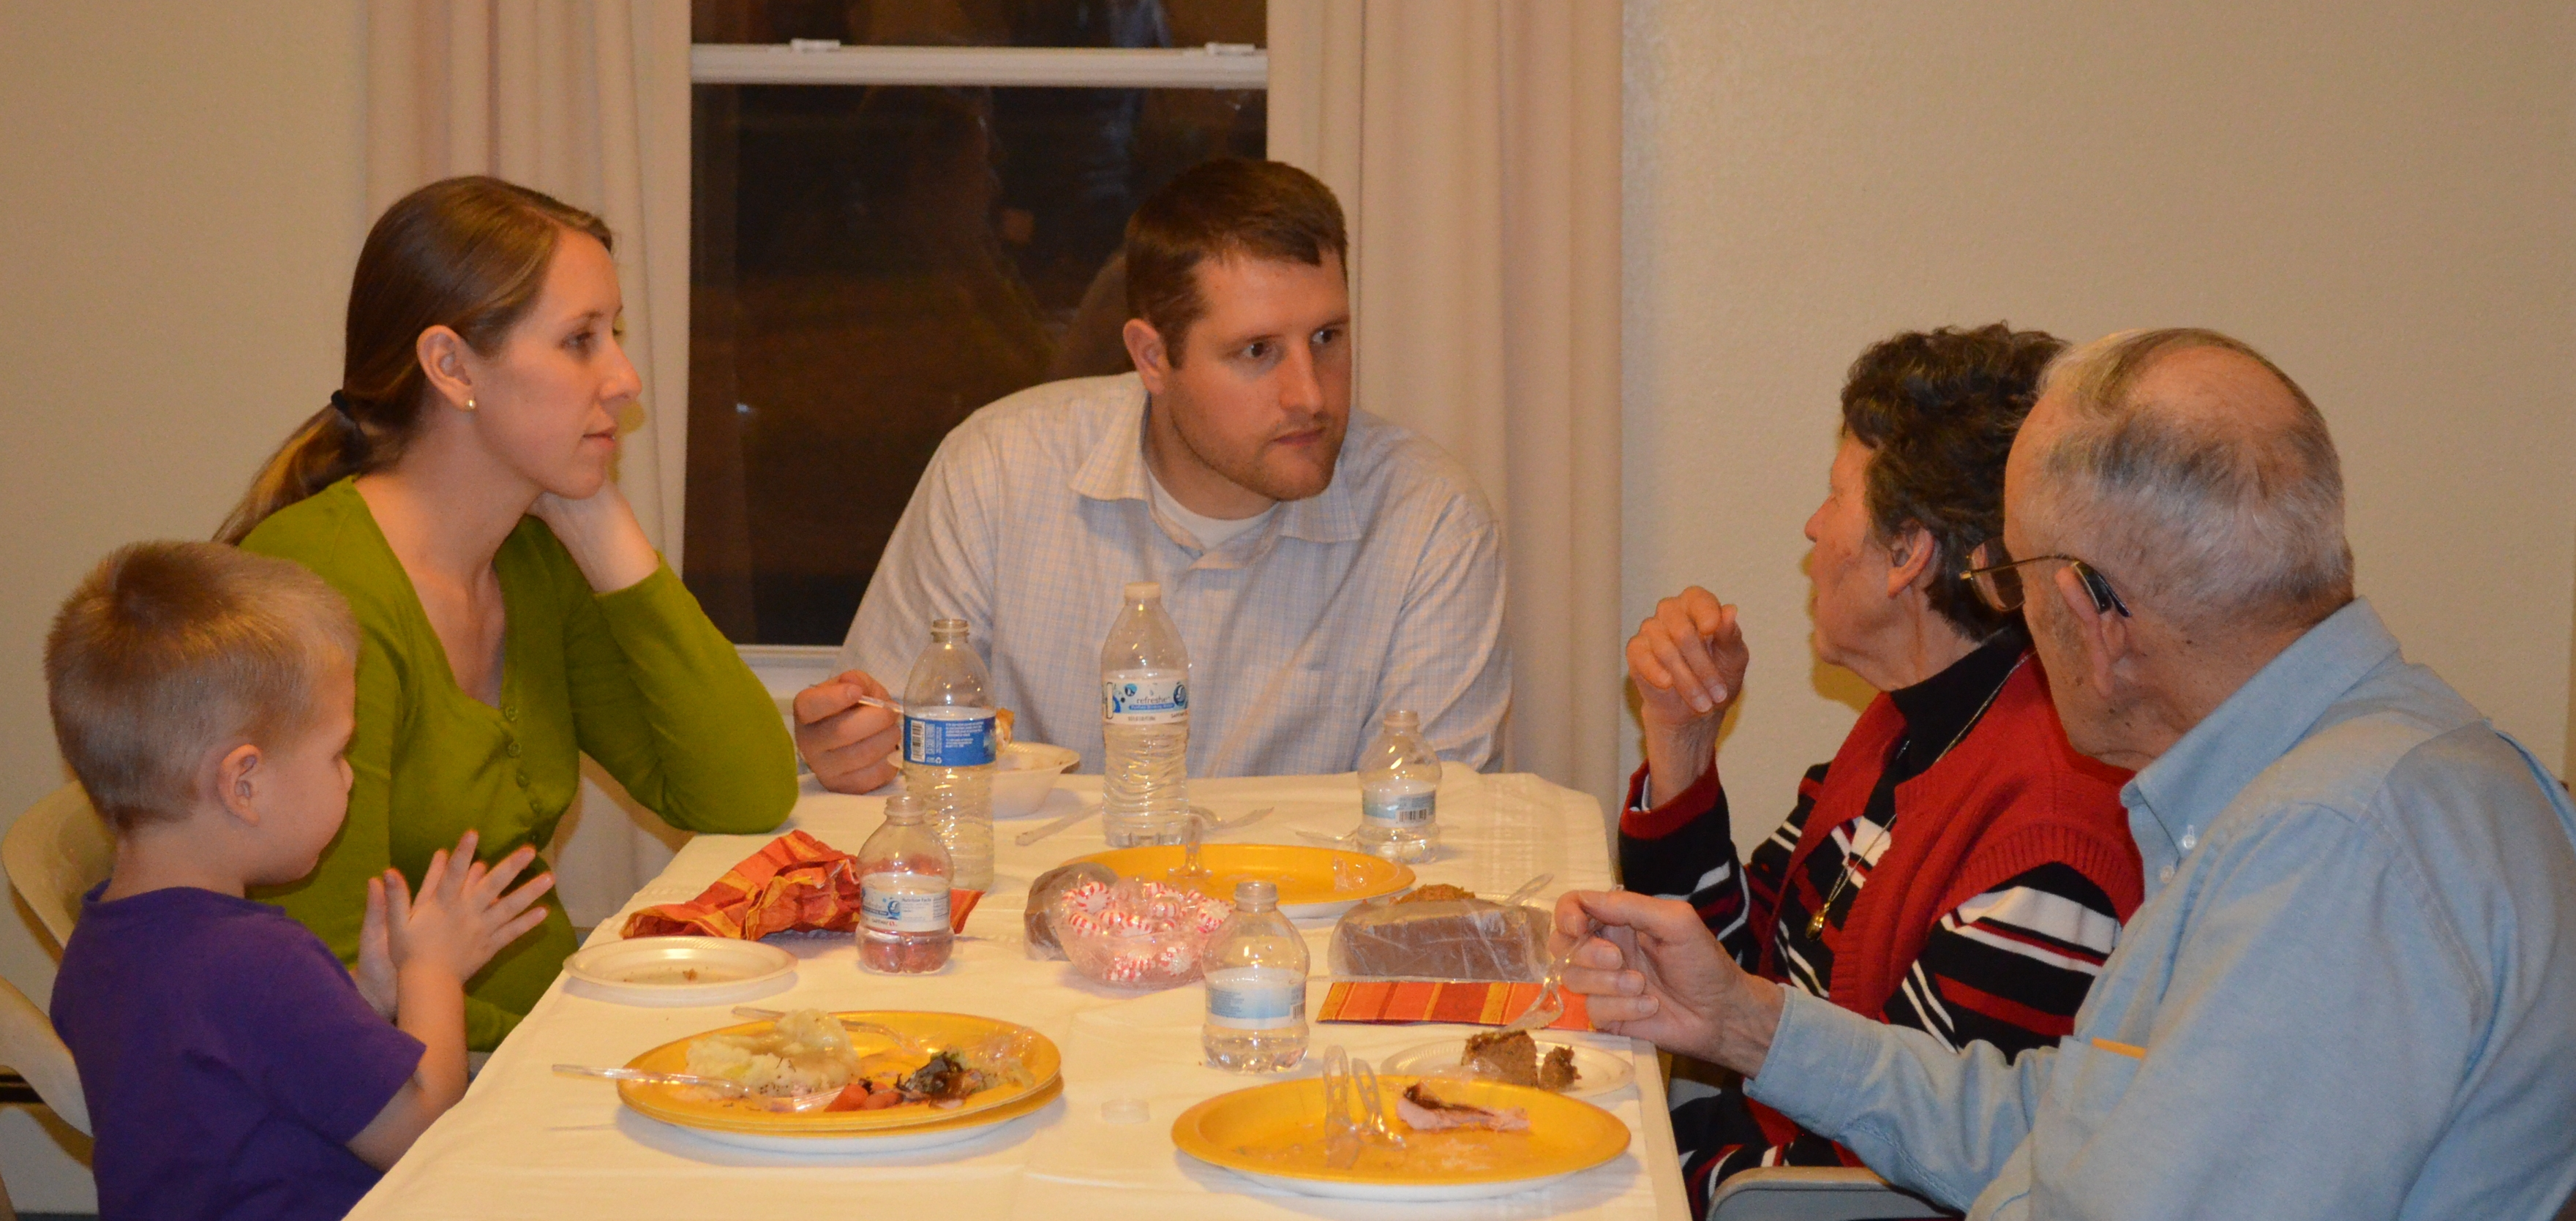 Isaac, 2, Natalie and Landon Bluemel share an early Thanksgiving meal with guests of the Masterson Place. Landon is a medical student in surgery in the University of Wyoming residency program. He and his family are staying in the Masterson Place while in Casper.